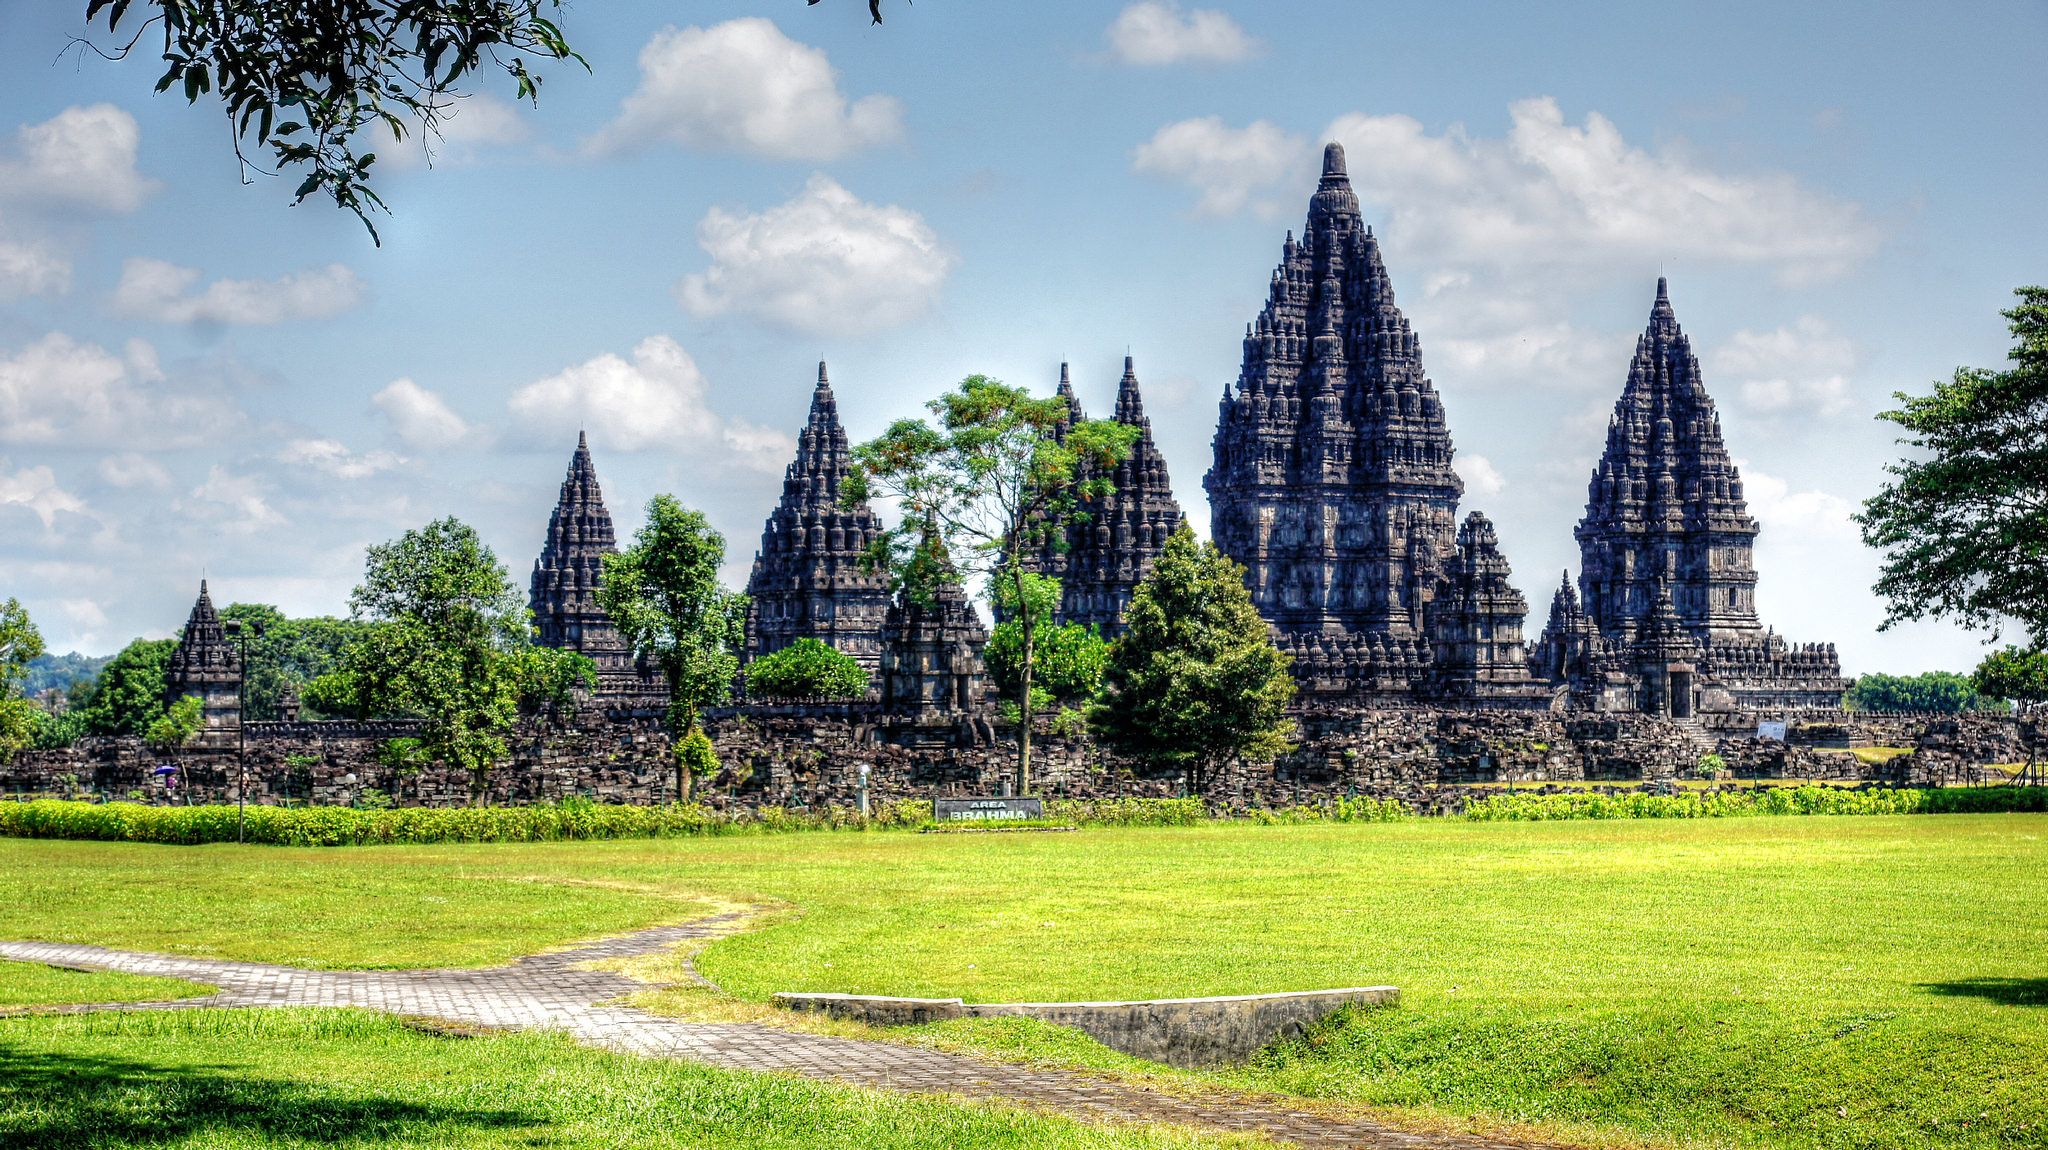 Prambanan - Temple in Indonesia - Thousand Wonders